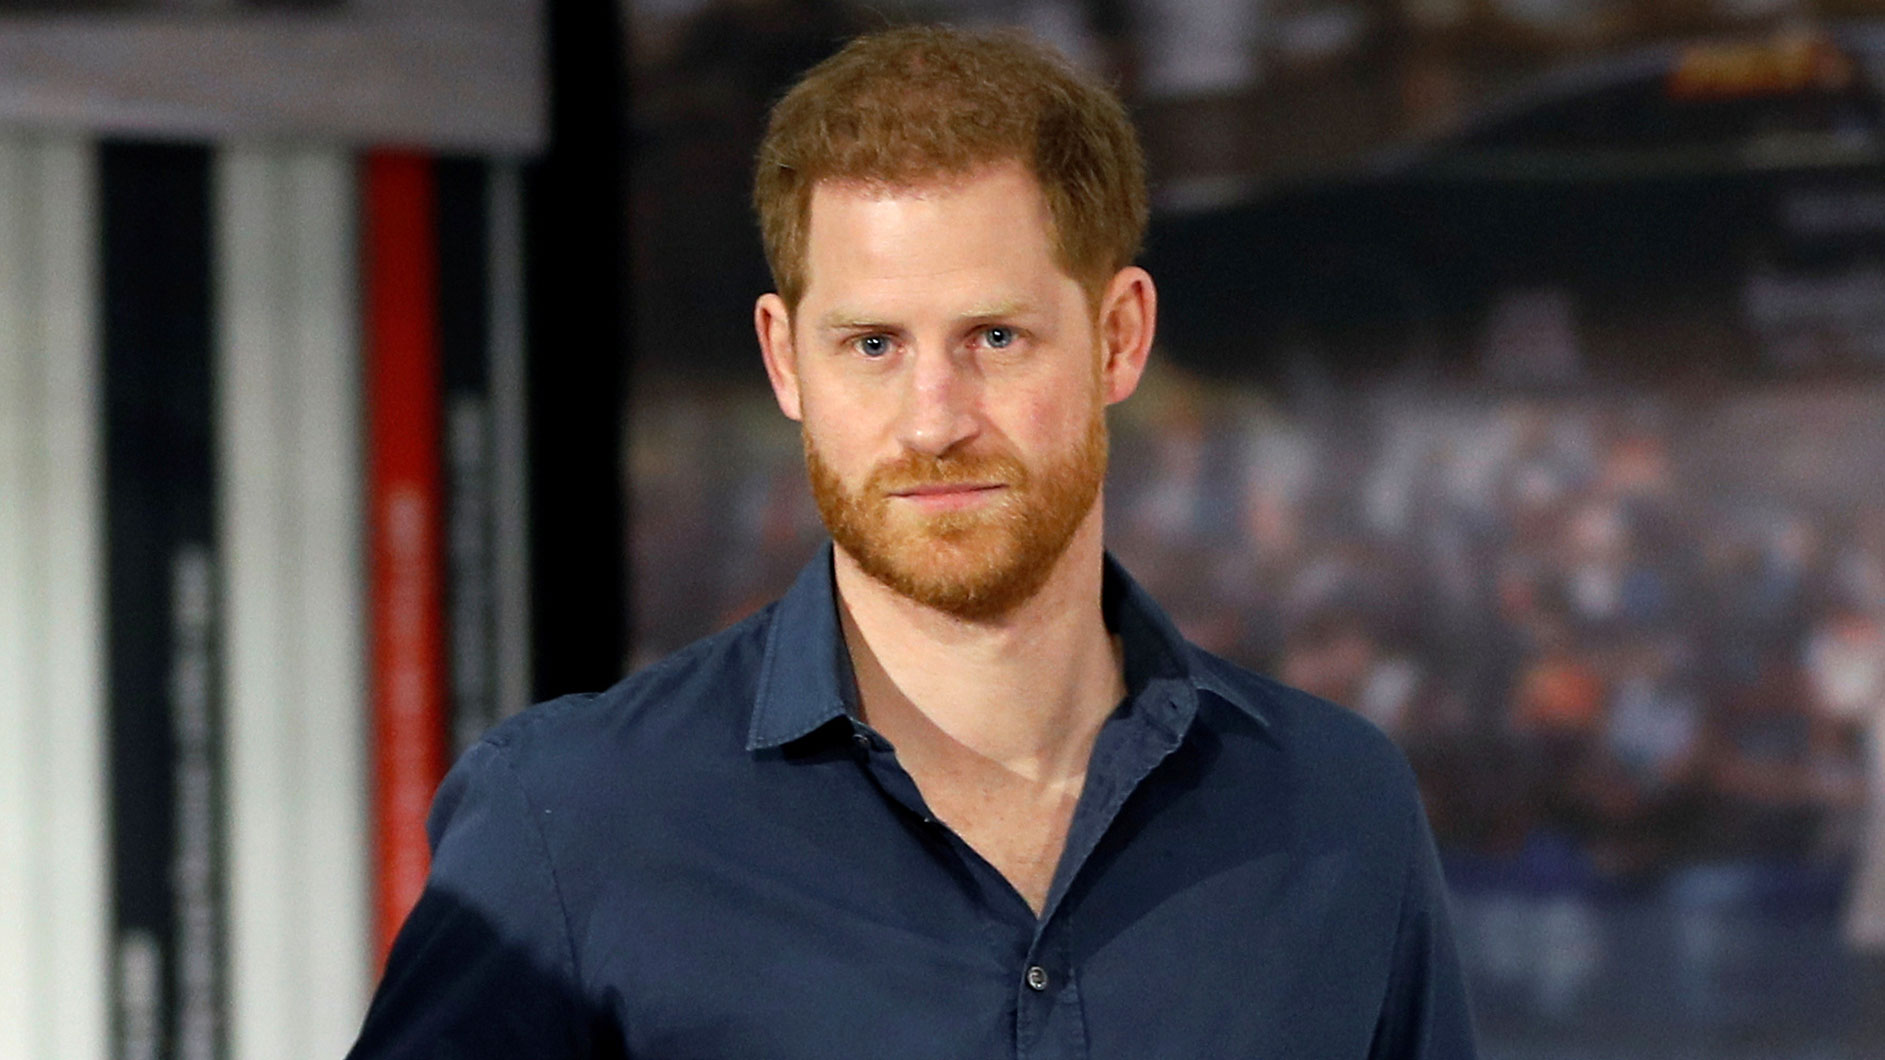 Prince Harry attends an event in Silverstone, England, on March 6.